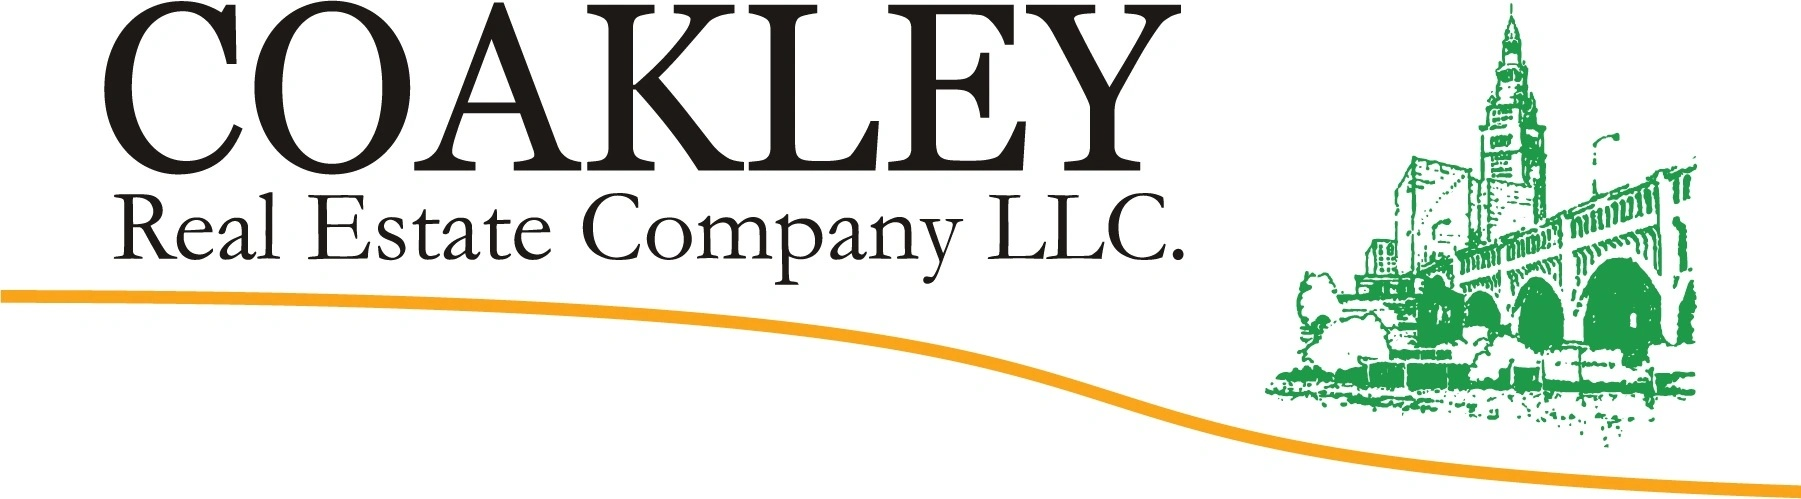 Coakley Real Estate Co.,LLC